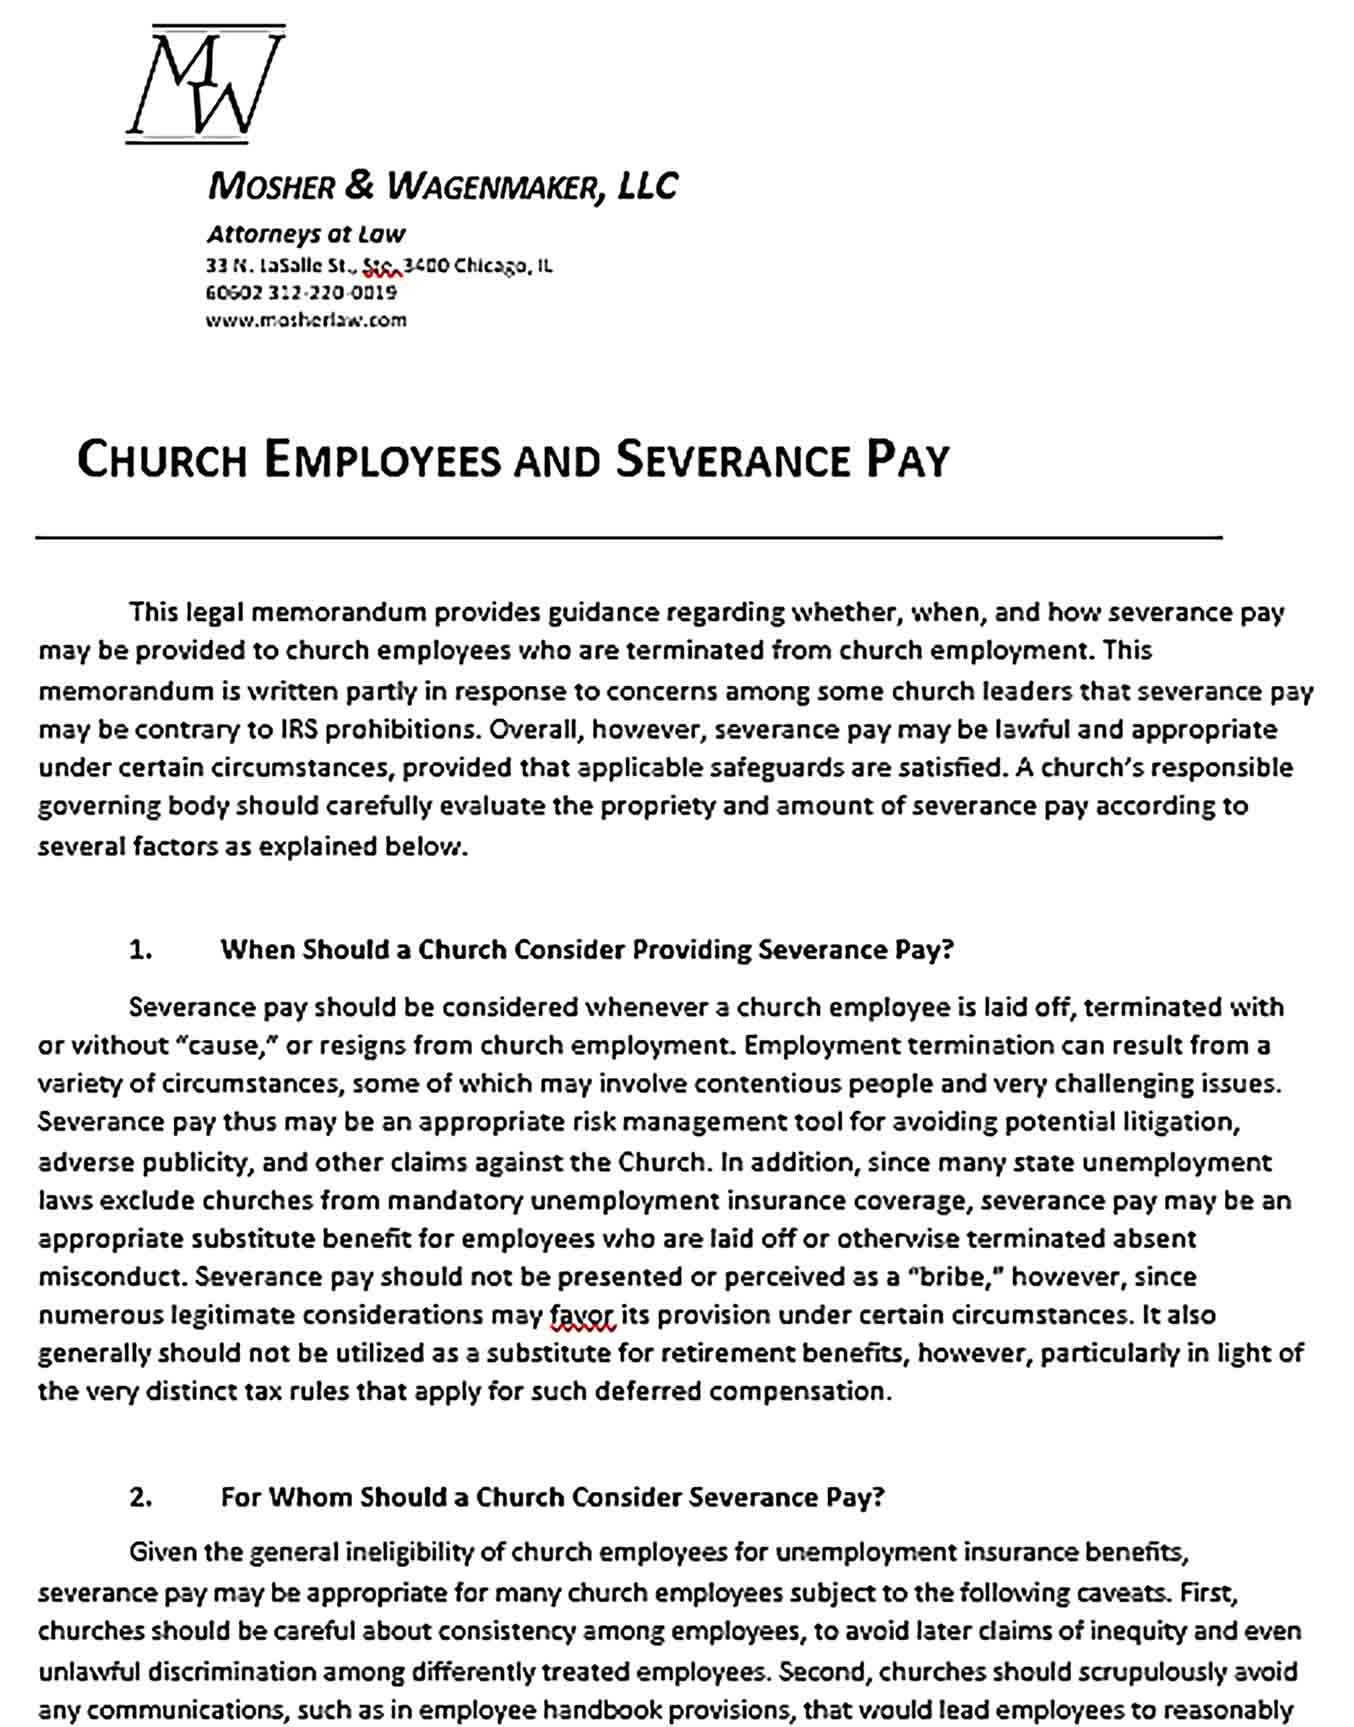 Sample Church Confidentiality Agreement Employees and Severance Pay